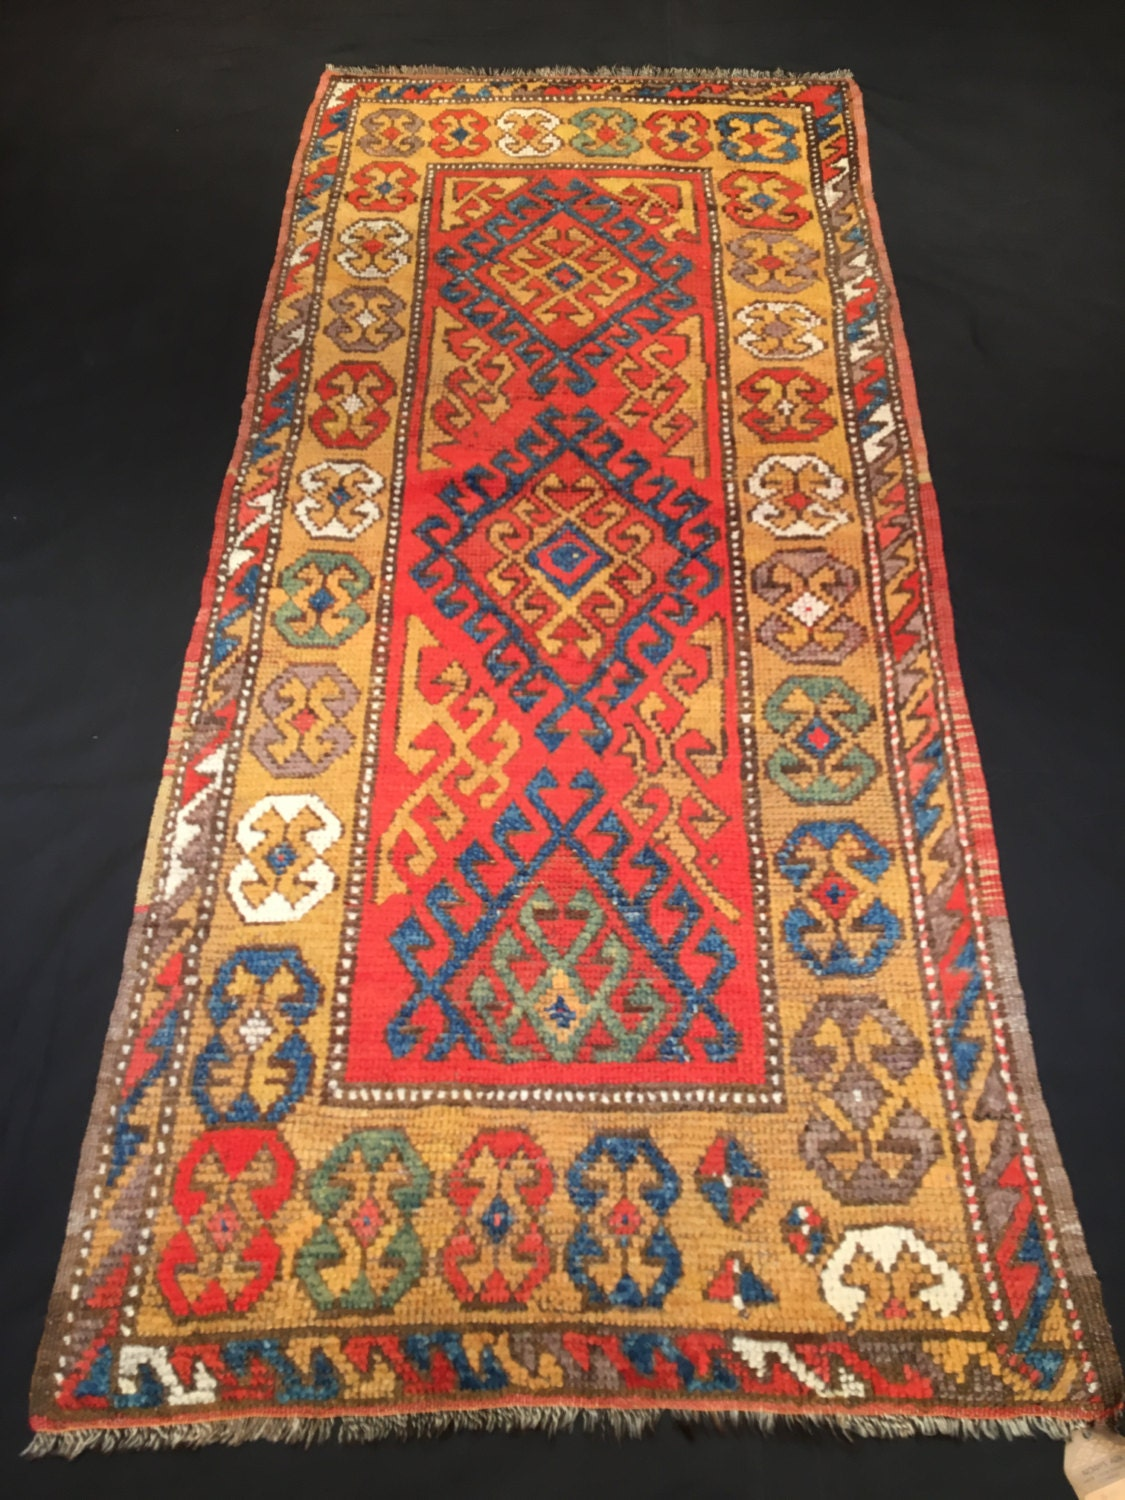 Vintage Warm Colors Turkish Rug Konya Pile Rug